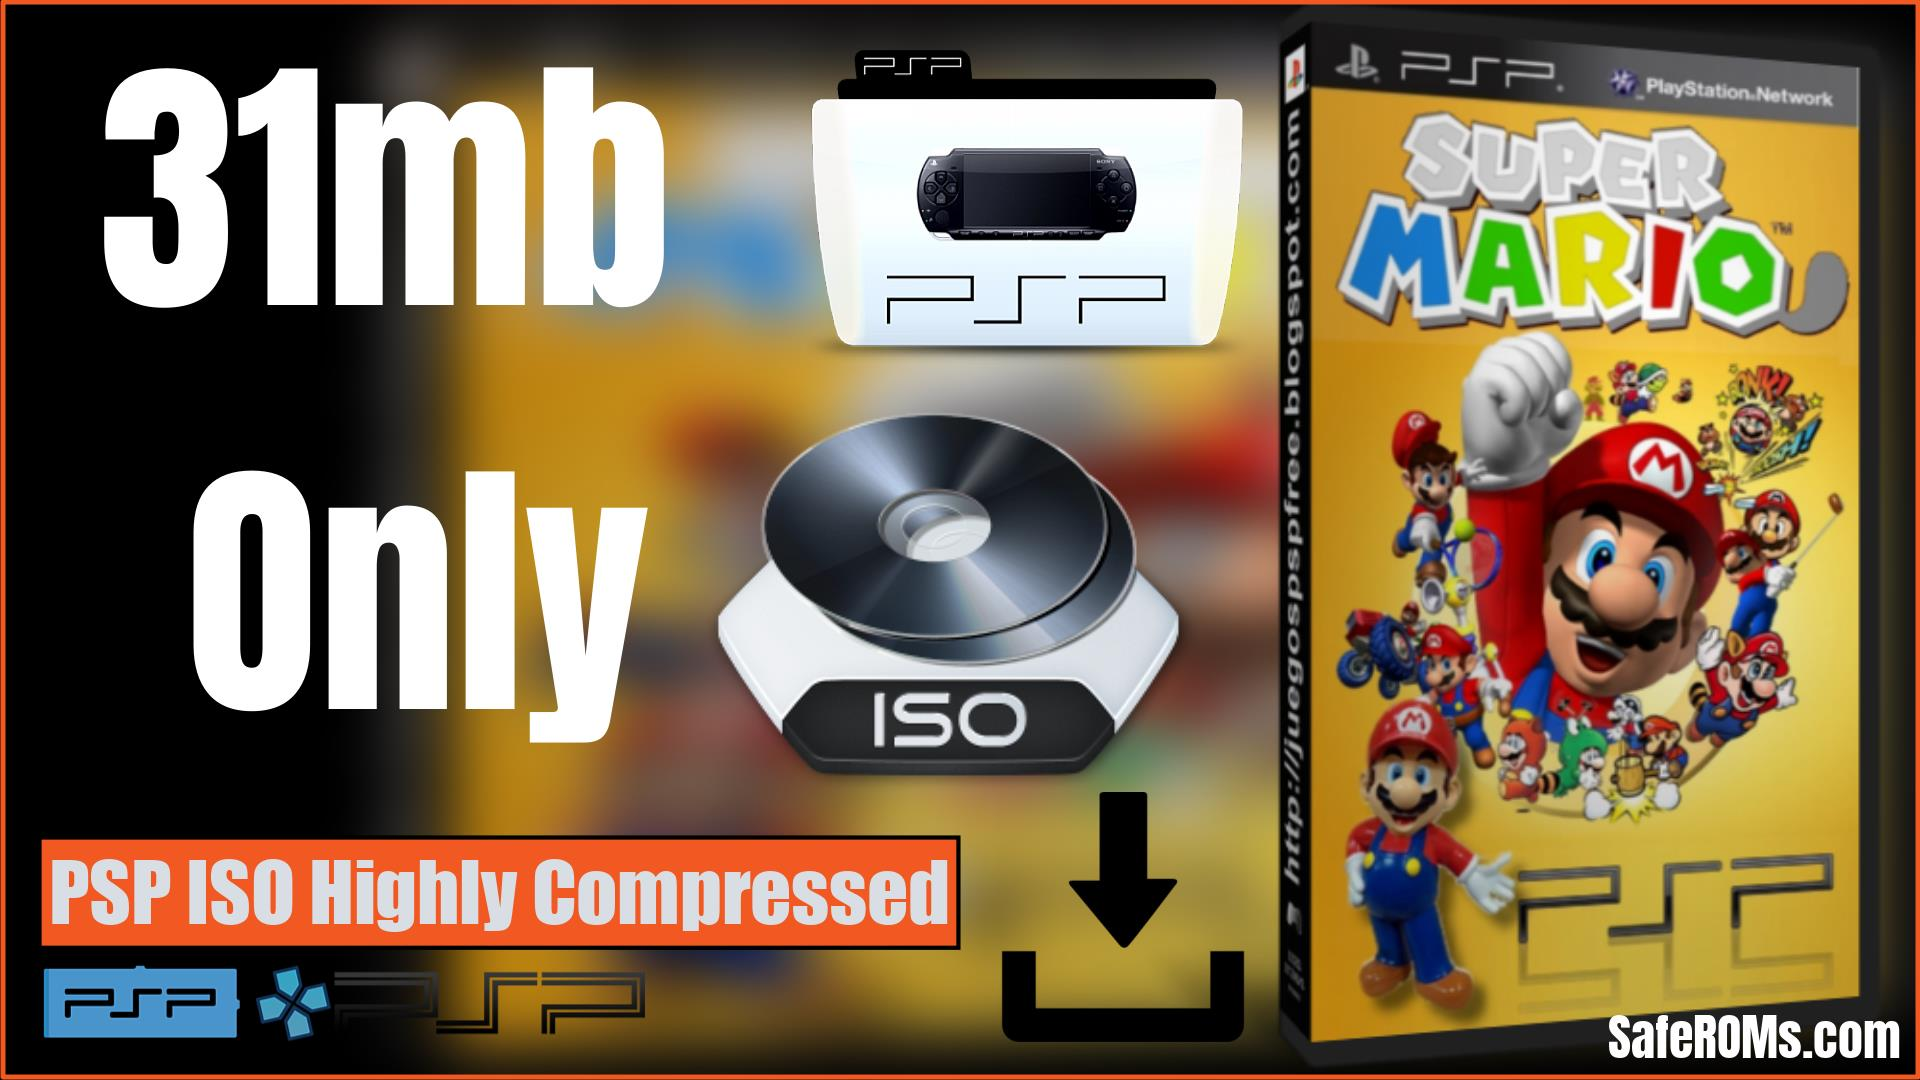 Mario Kart PSP ISO Highly Compressed Download